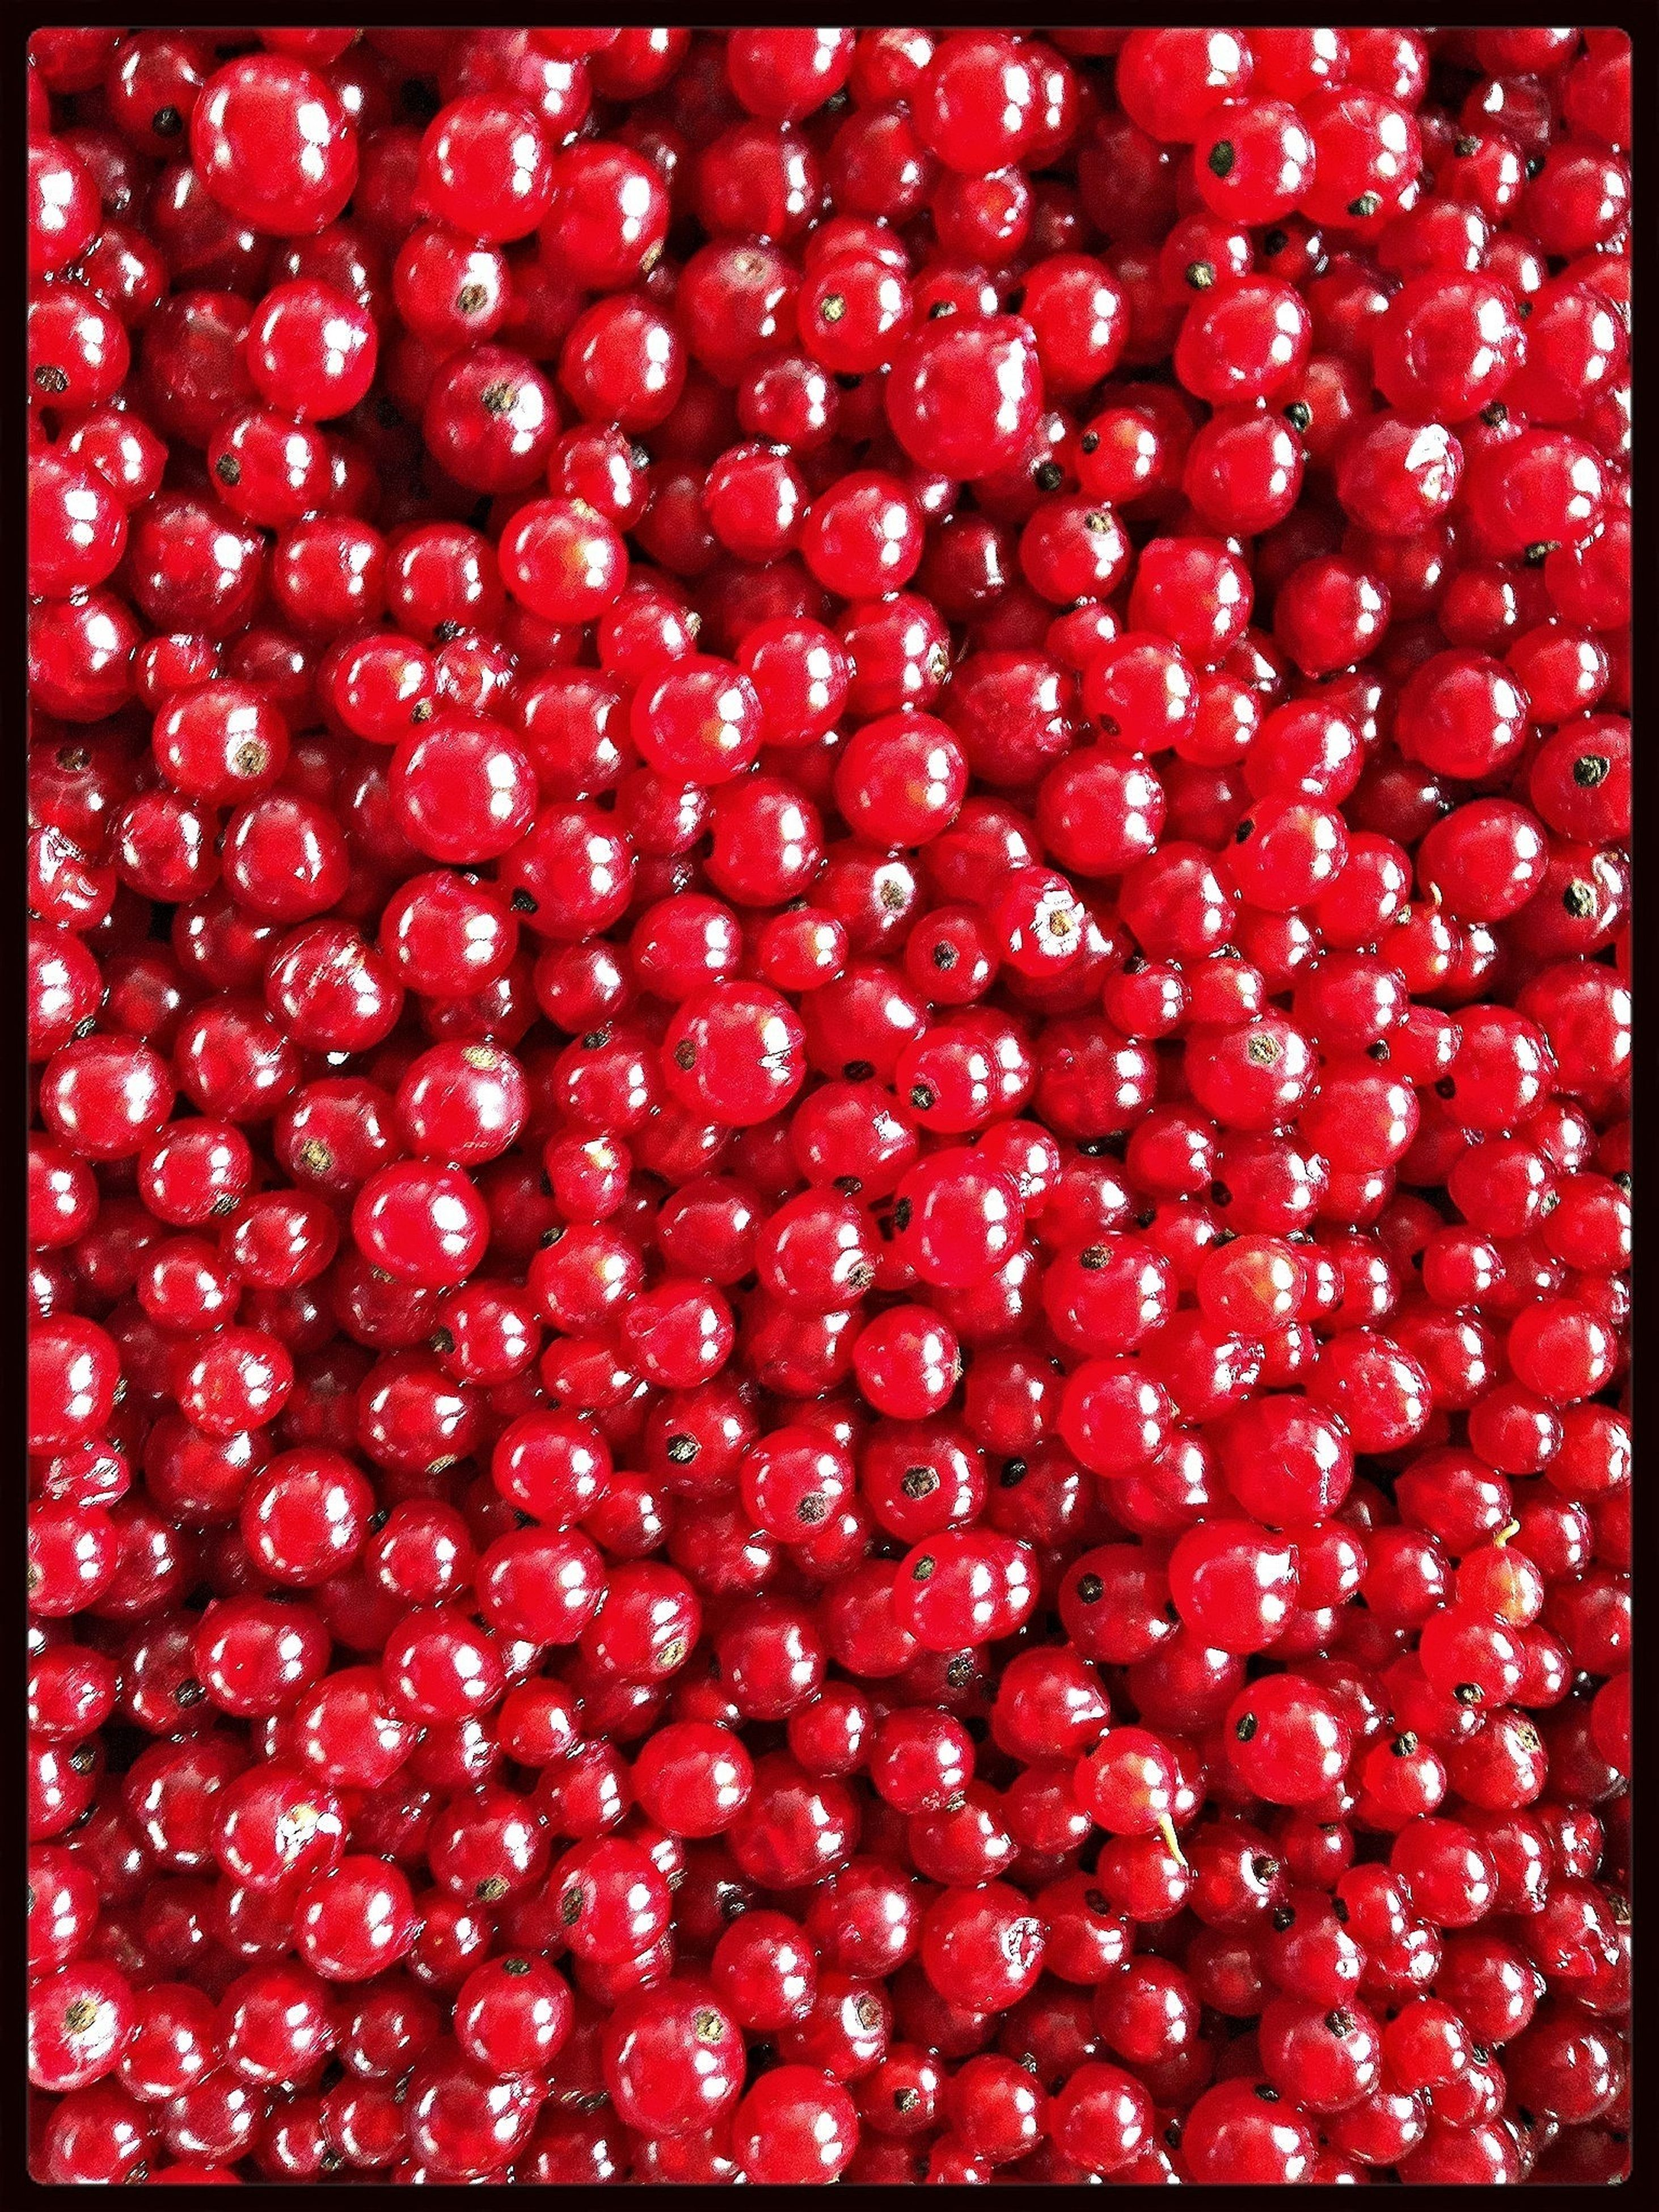 red, full frame, backgrounds, food and drink, abundance, transfer print, food, freshness, auto post production filter, large group of objects, healthy eating, fruit, close-up, vibrant color, strawberry, indoors, no people, textured, still life, pattern